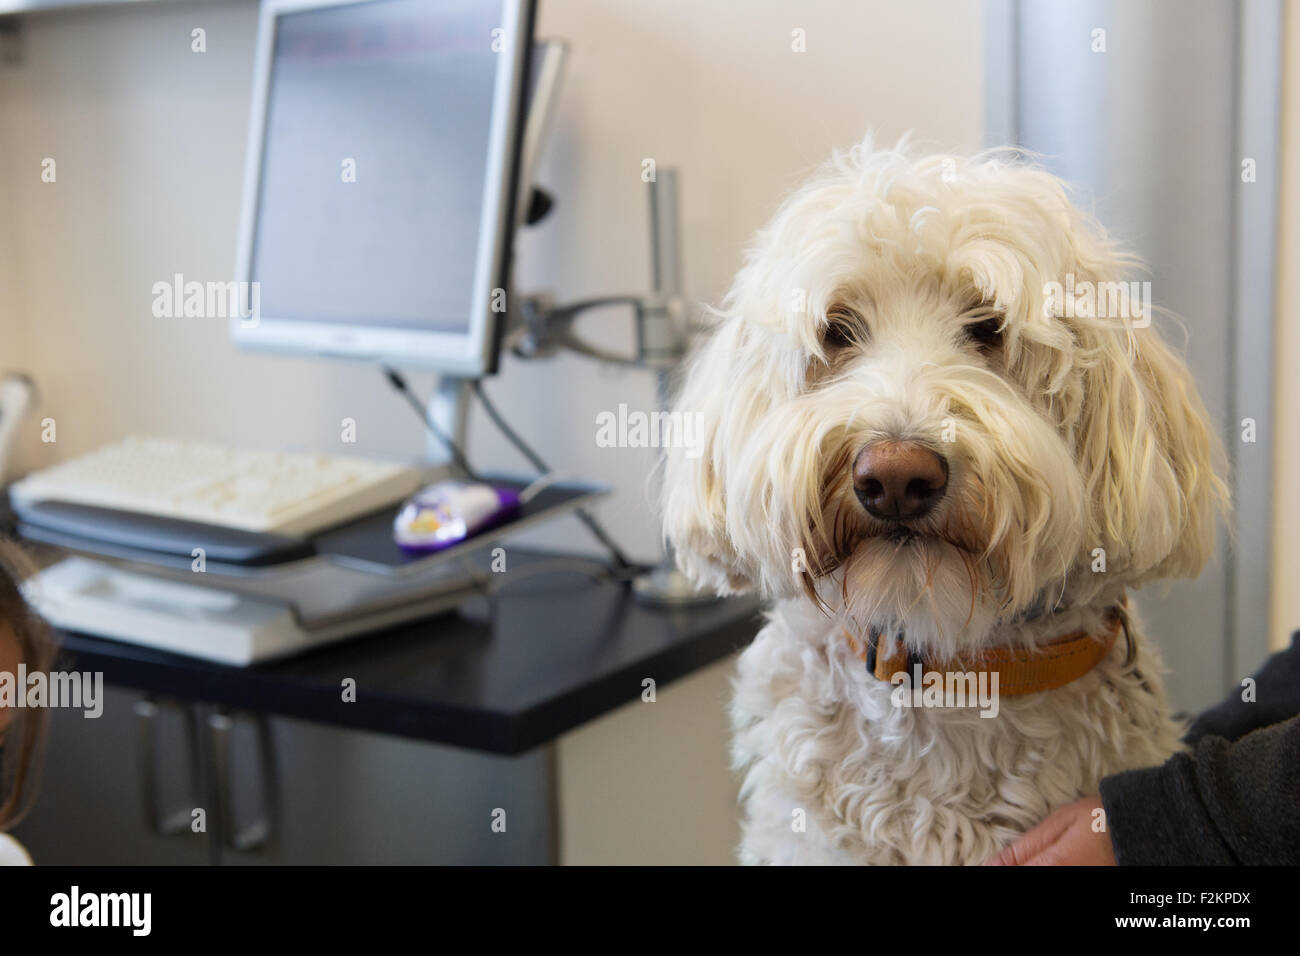 Veterinarian examining white dog - Stock Image